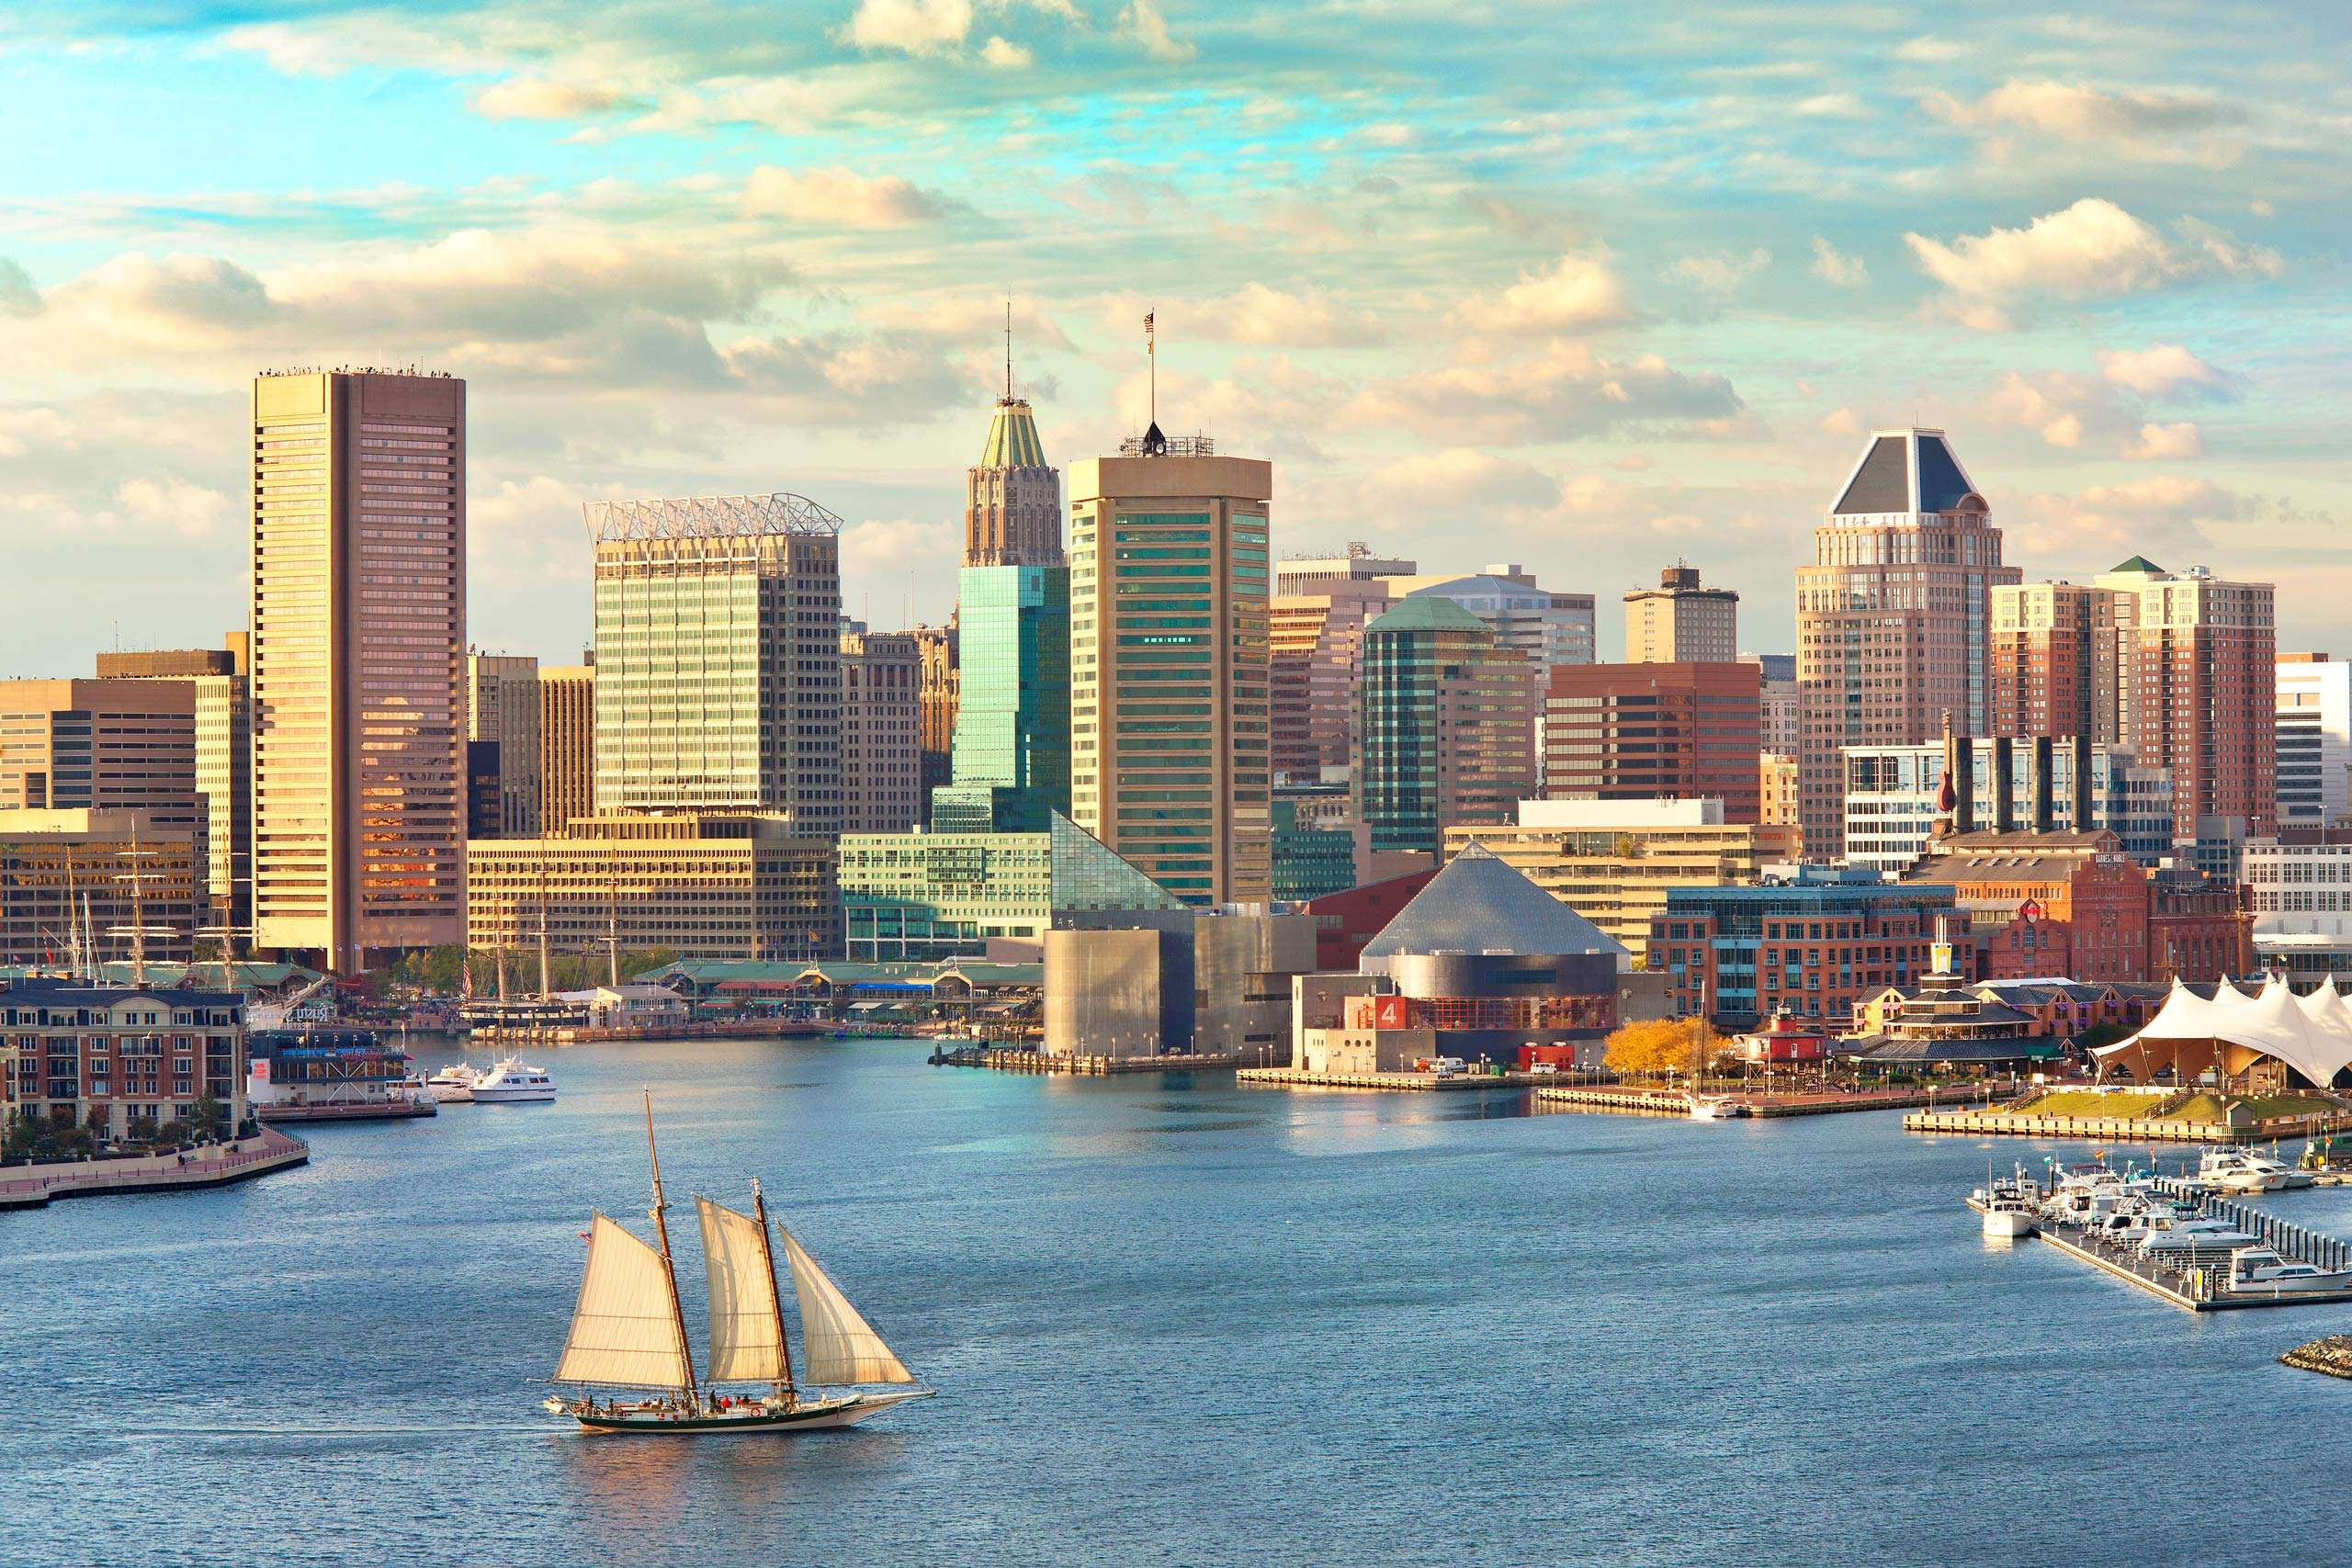 Tall Ship with Baltimore Skyline